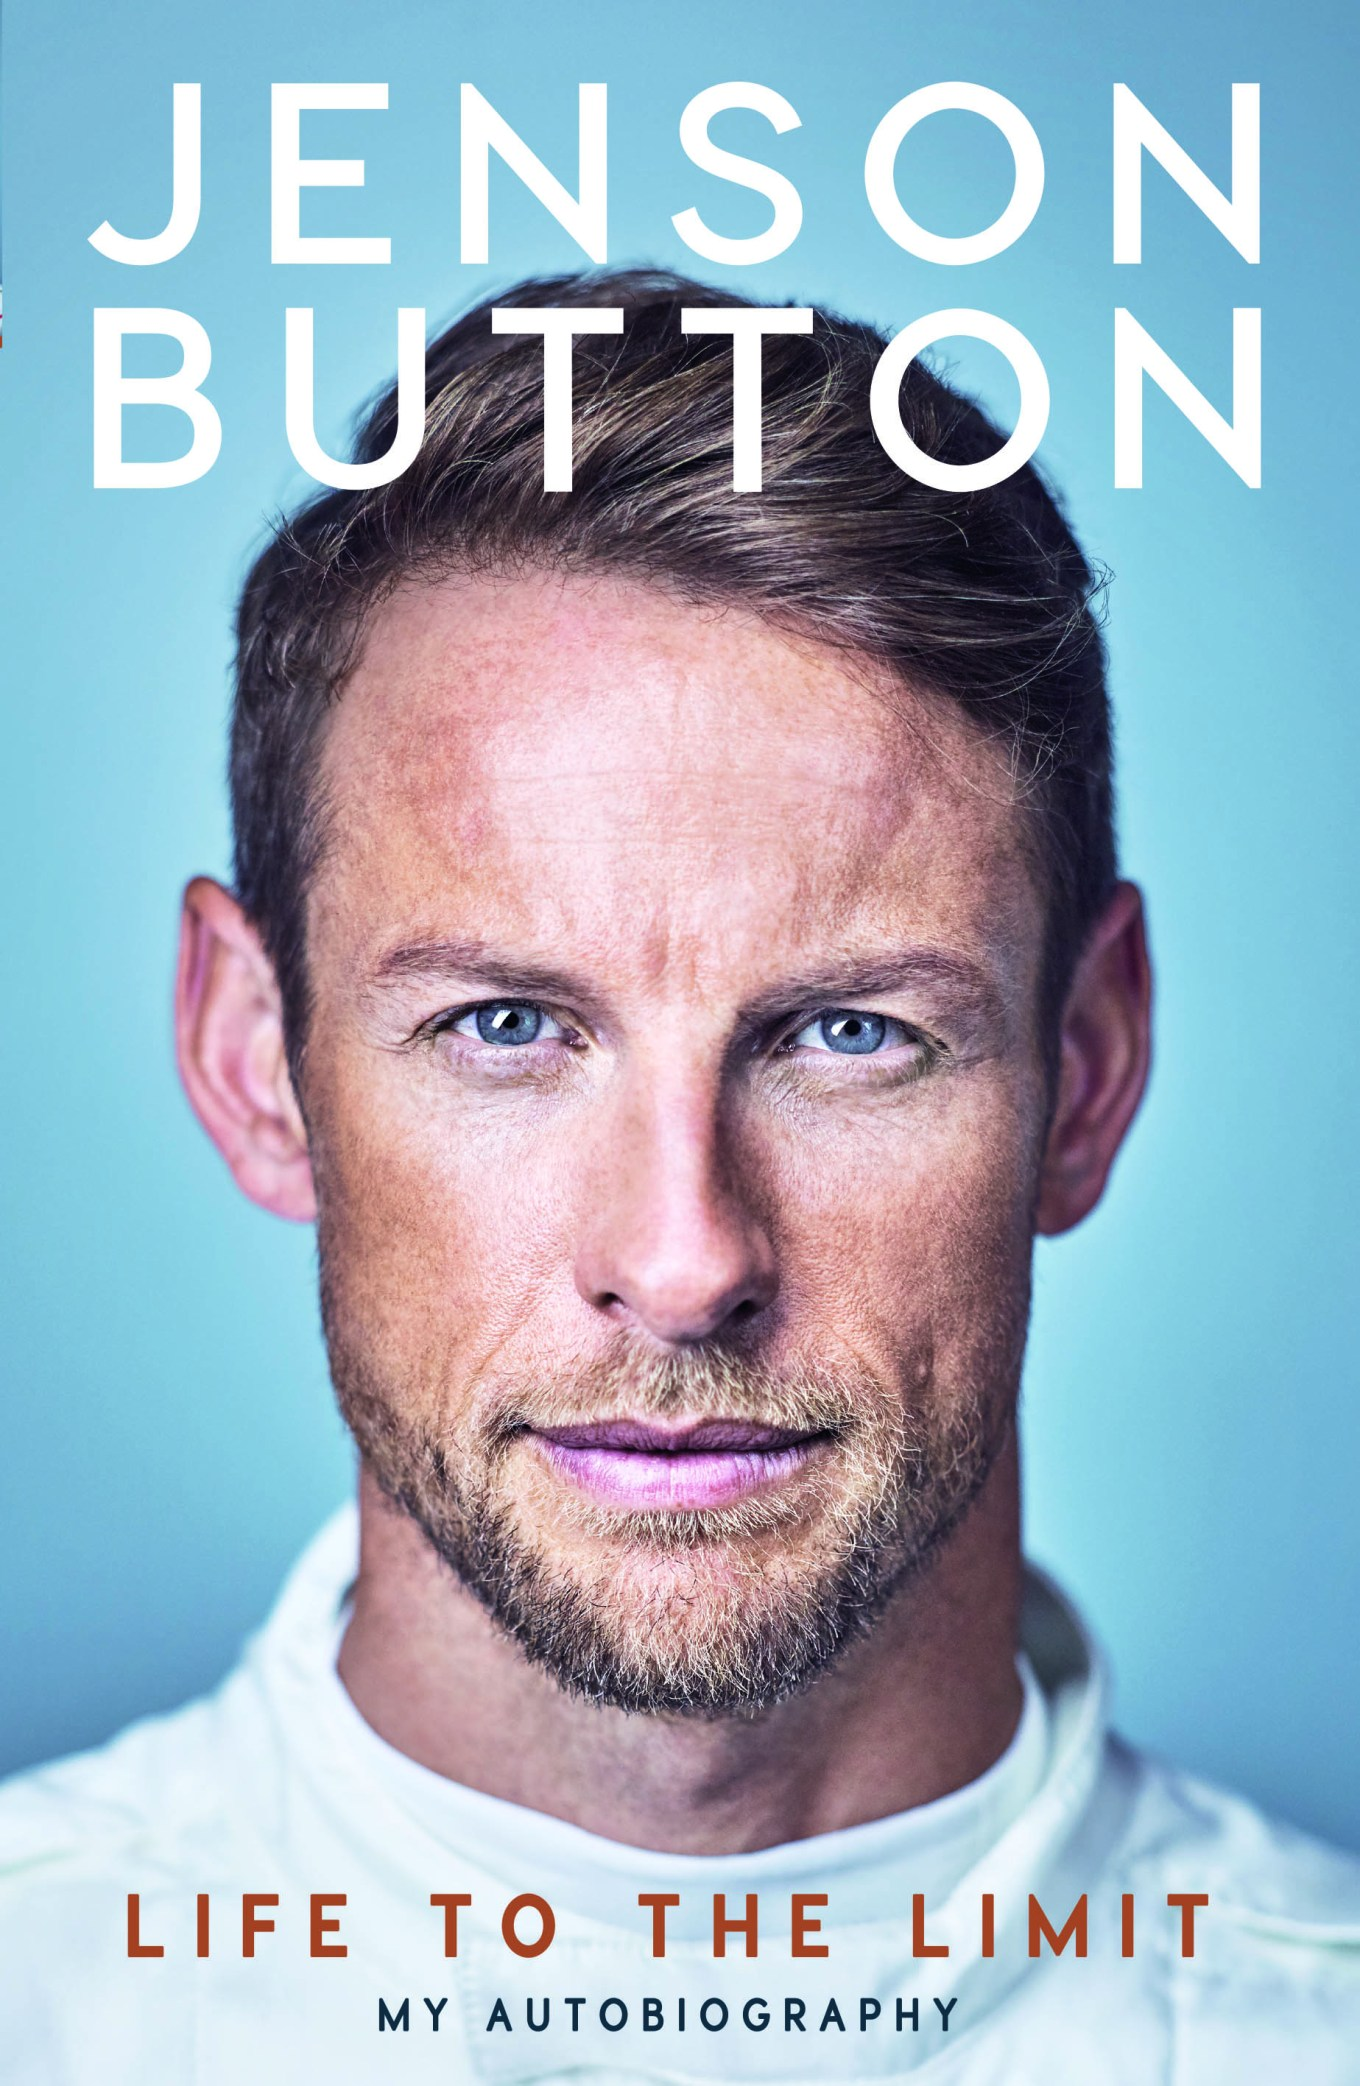 JENSON BUTTON HB JACKET JULY 12 MATT LAM.indd